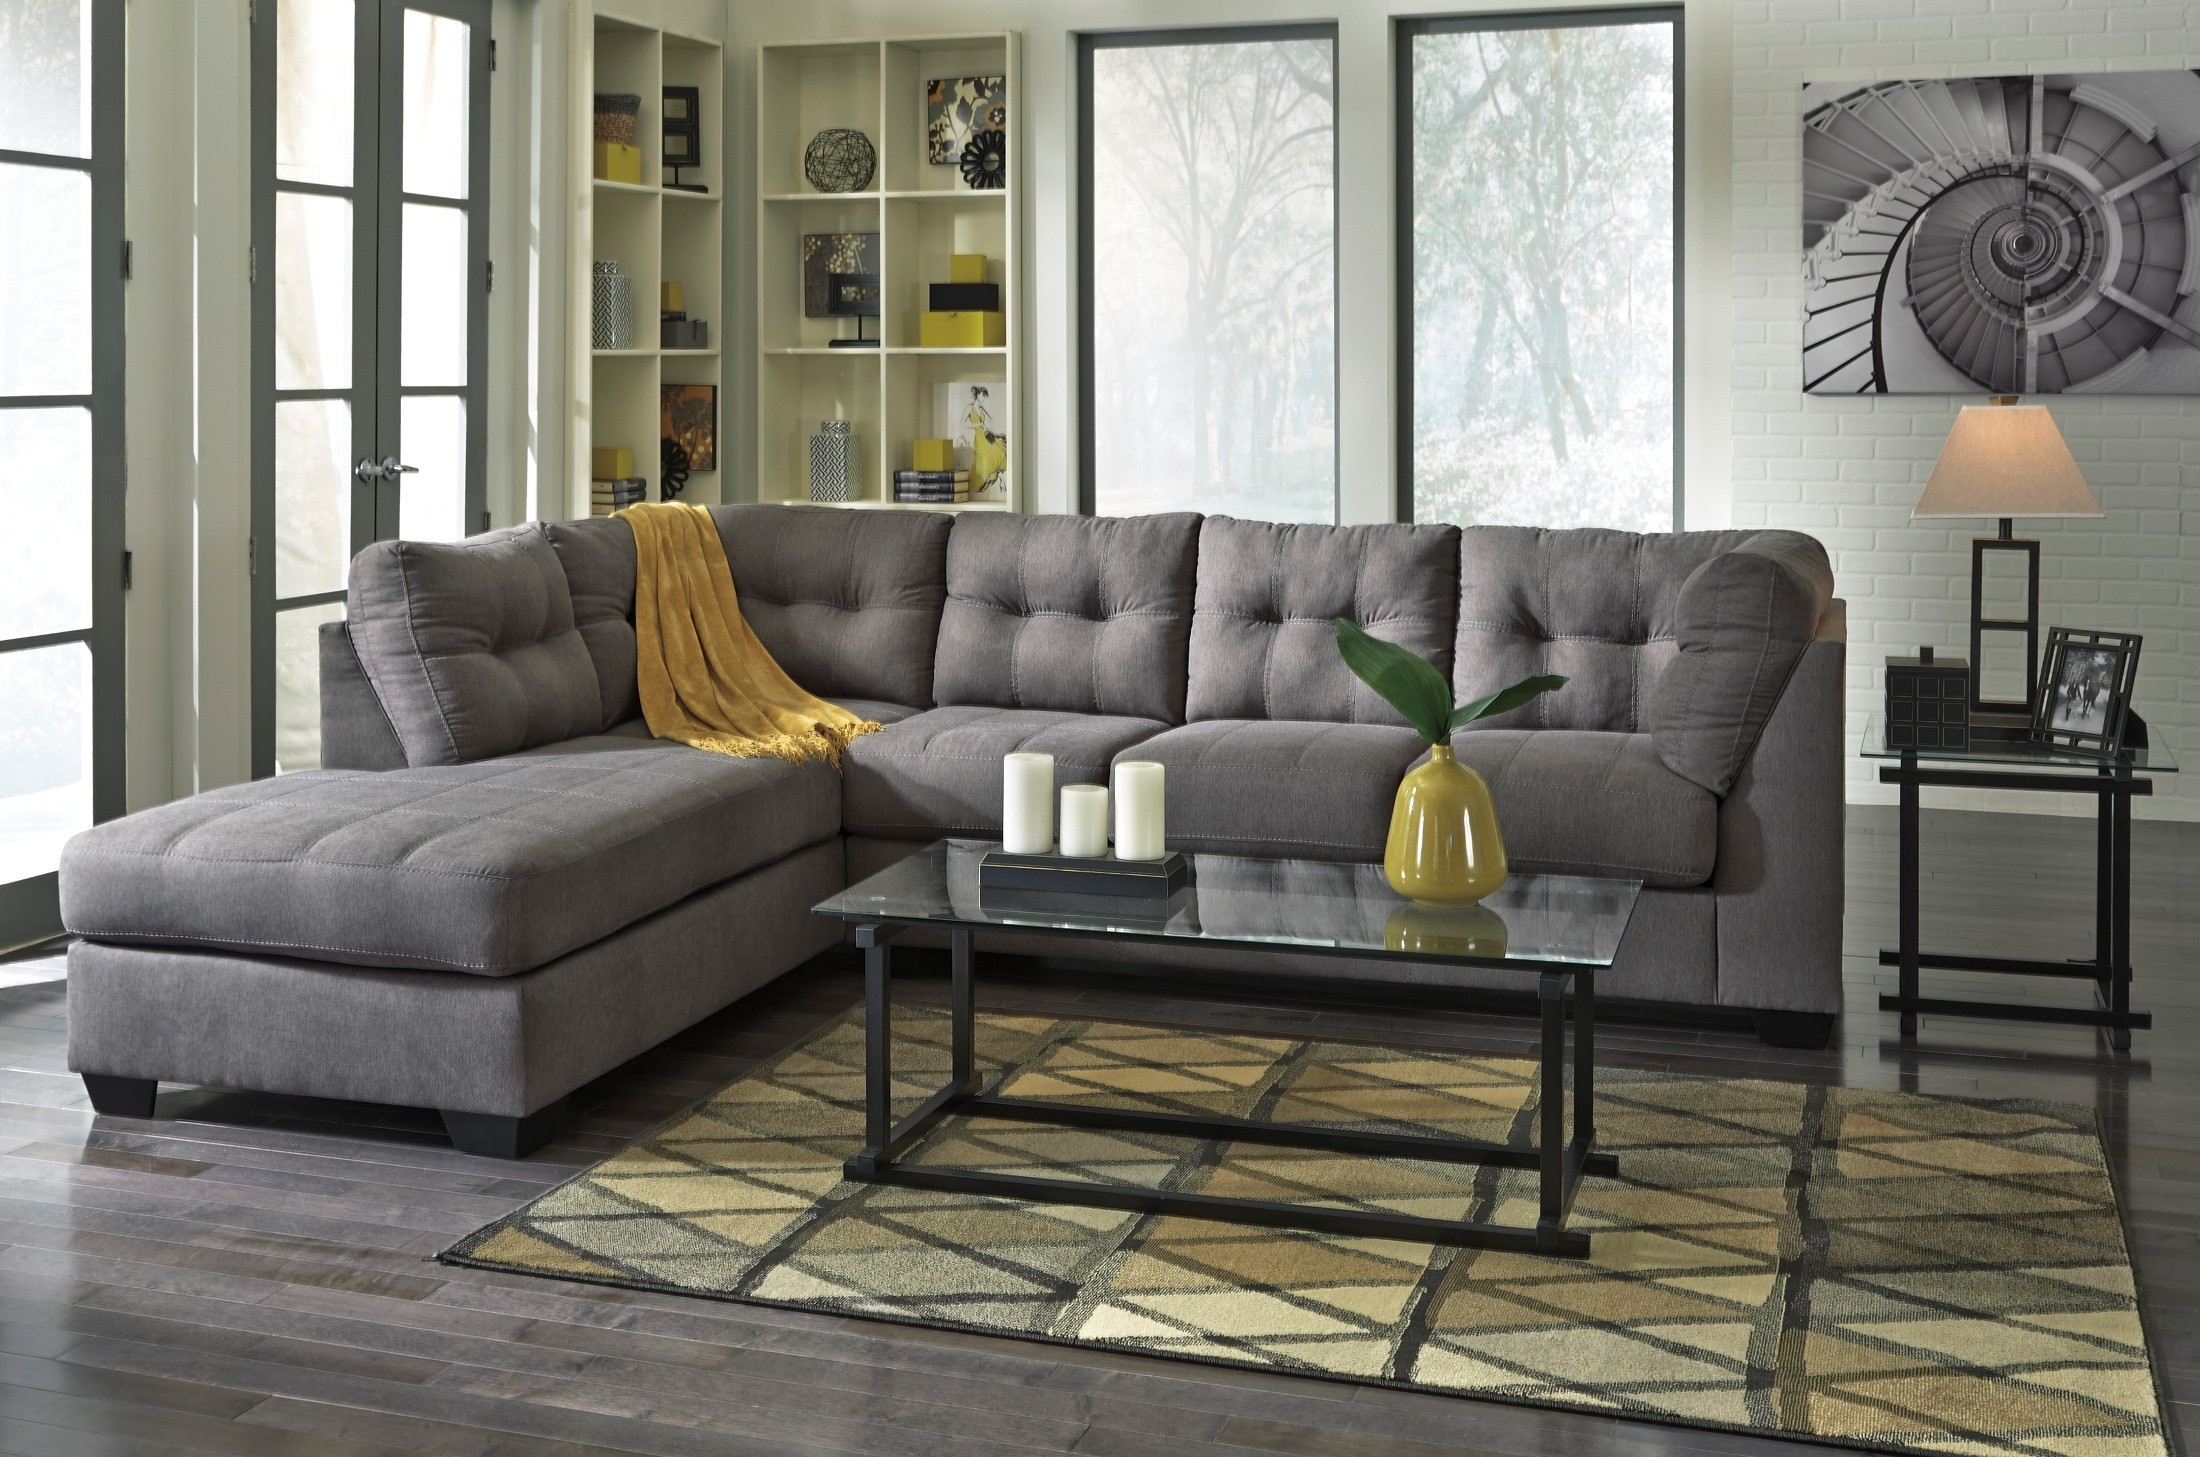 Coleman Intended For Meyer 3 Piece Sectionals With Laf Chaise (View 1 of 20)